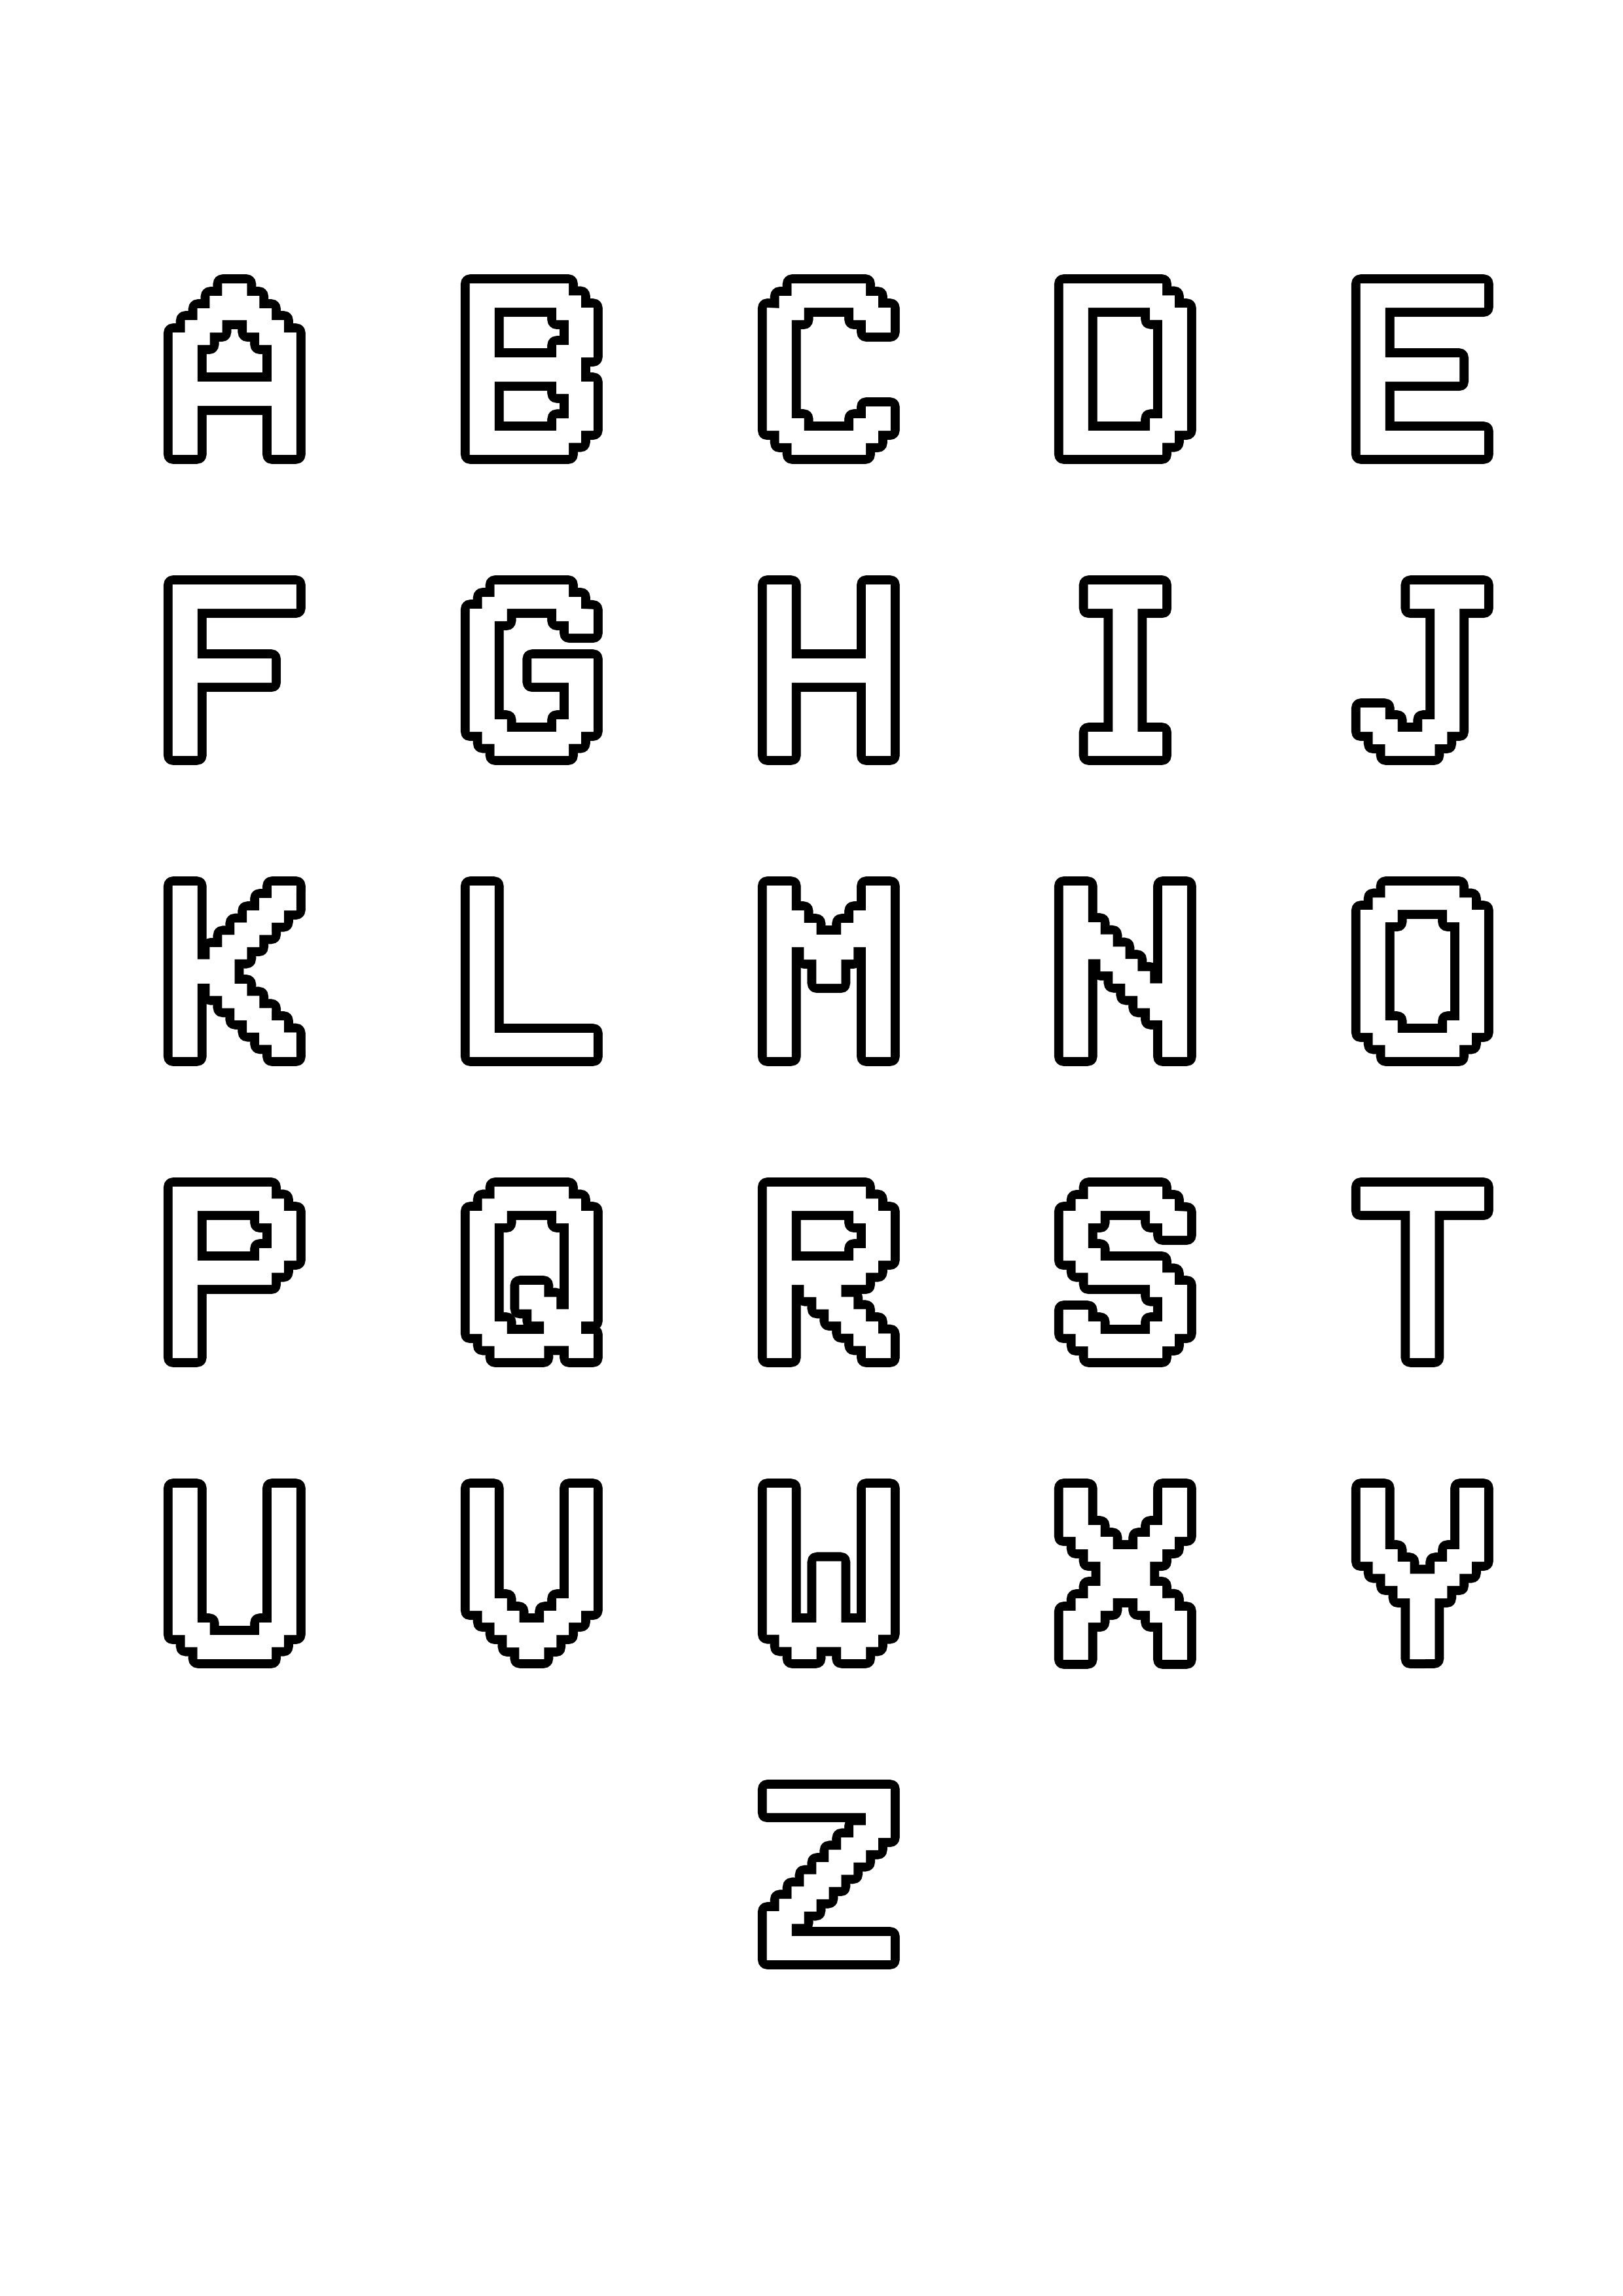 Alphabet Free To Color For Kids From A To Z